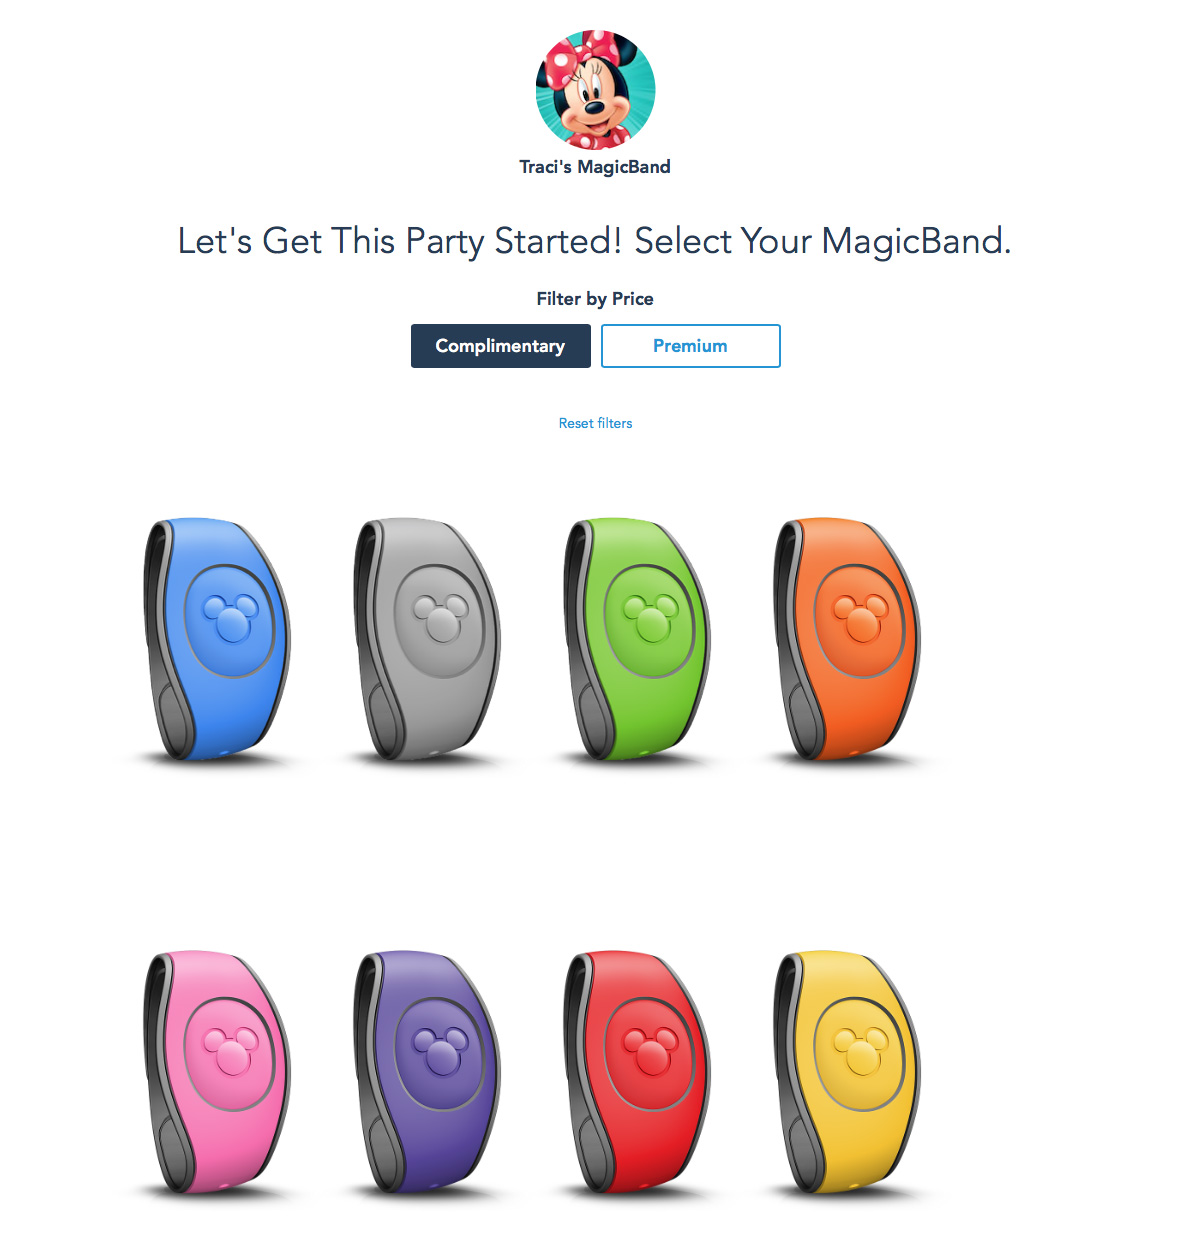 Choose a MagicBand